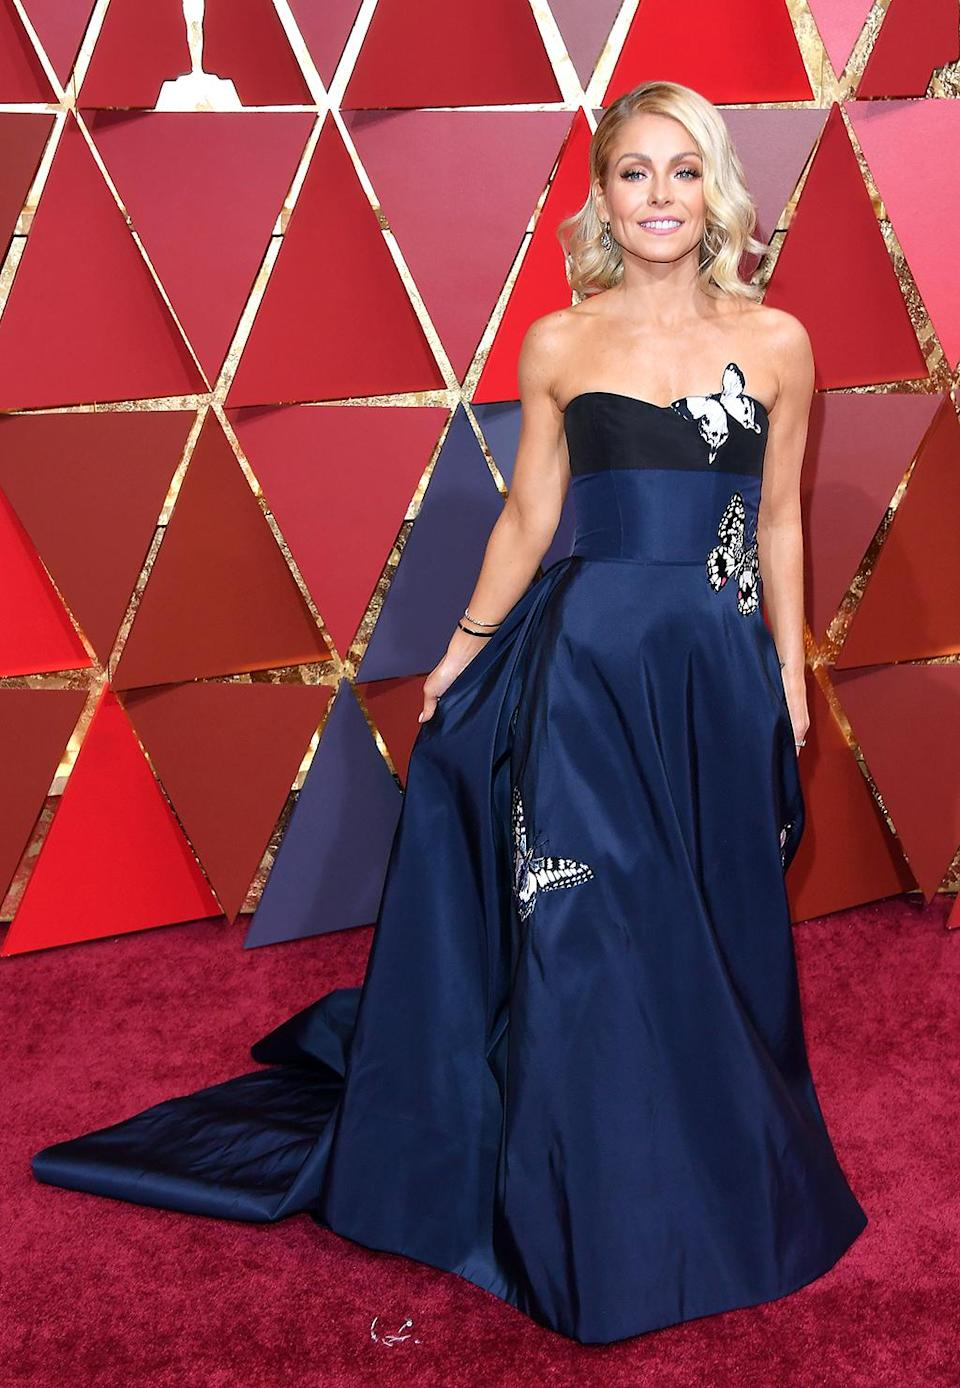 <p>TV Personality Kelly Ripa attends the 89th Annual Academy Awards at Hollywood & Highland Center on February 26, 2017 in Hollywood, California. (Photo by George Pimentel/FilmMagic) </p>